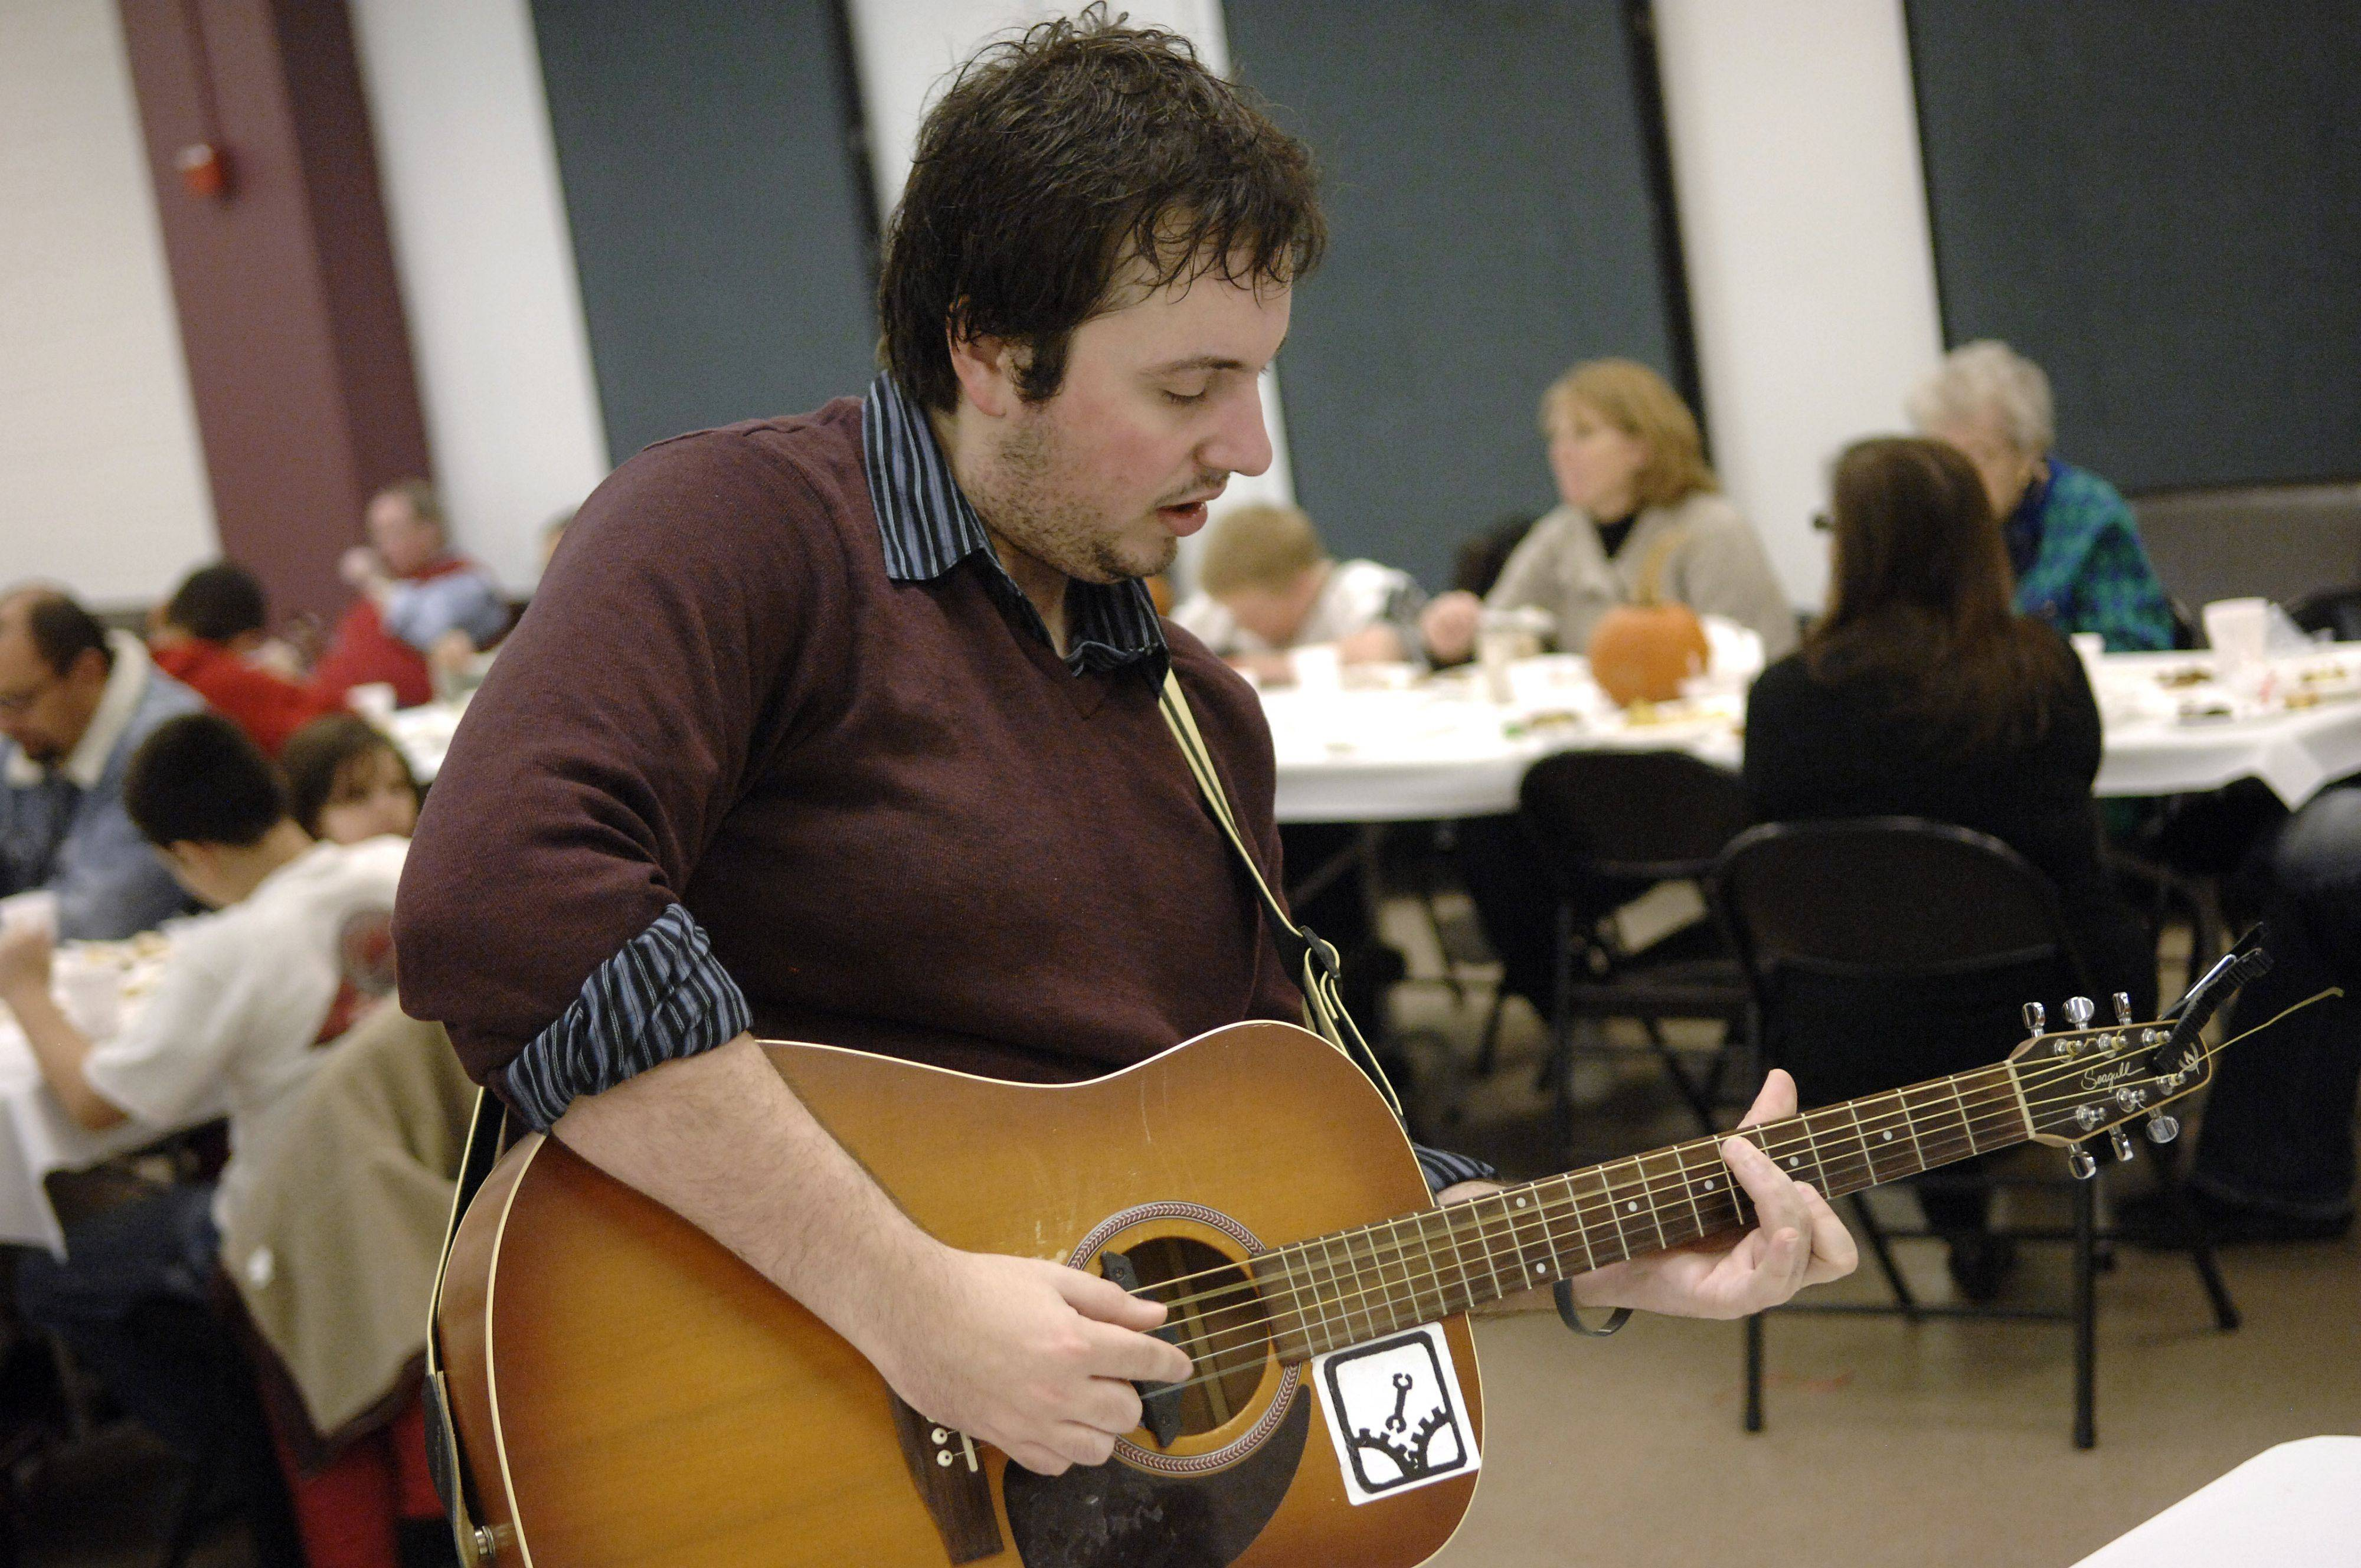 Jesse Greco of Elgin plays requests for diners at the Thanksgiving Community Dinner at the Hemmens Cultural Center in Elgin.